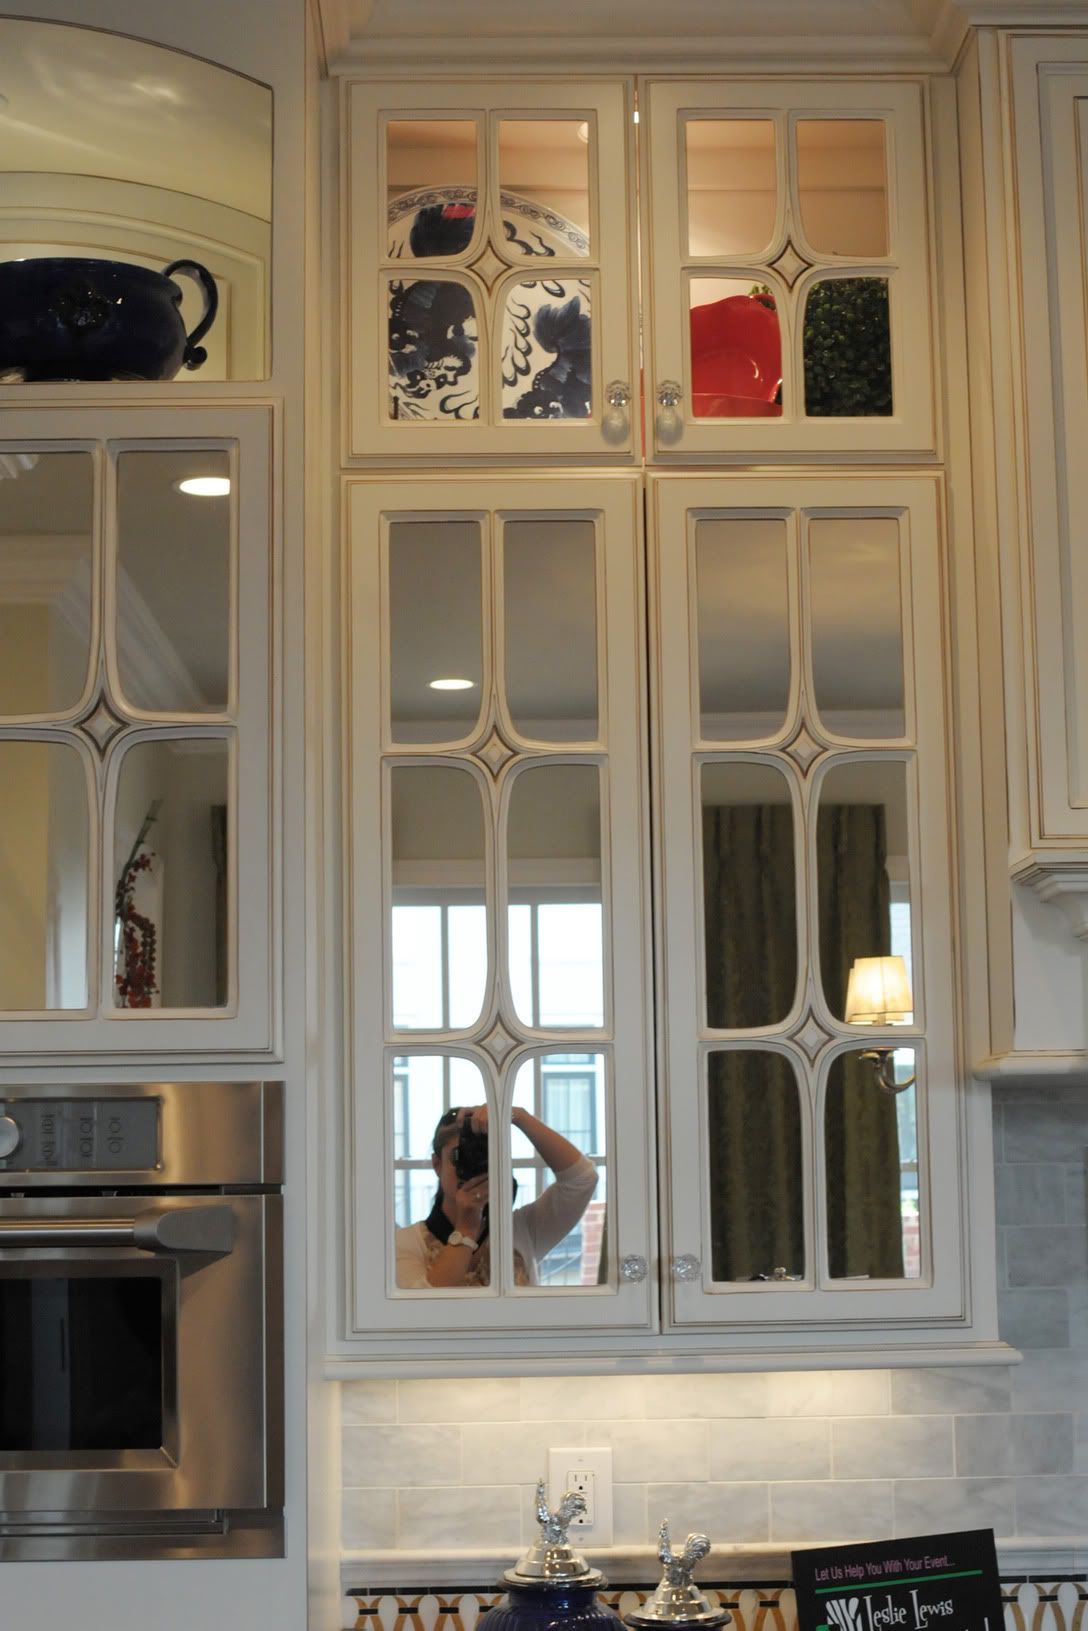 Mirrored Kitchen Cabinet Doors 10 Home Decorating Tips from a Home Show | Mirrored cabidoors